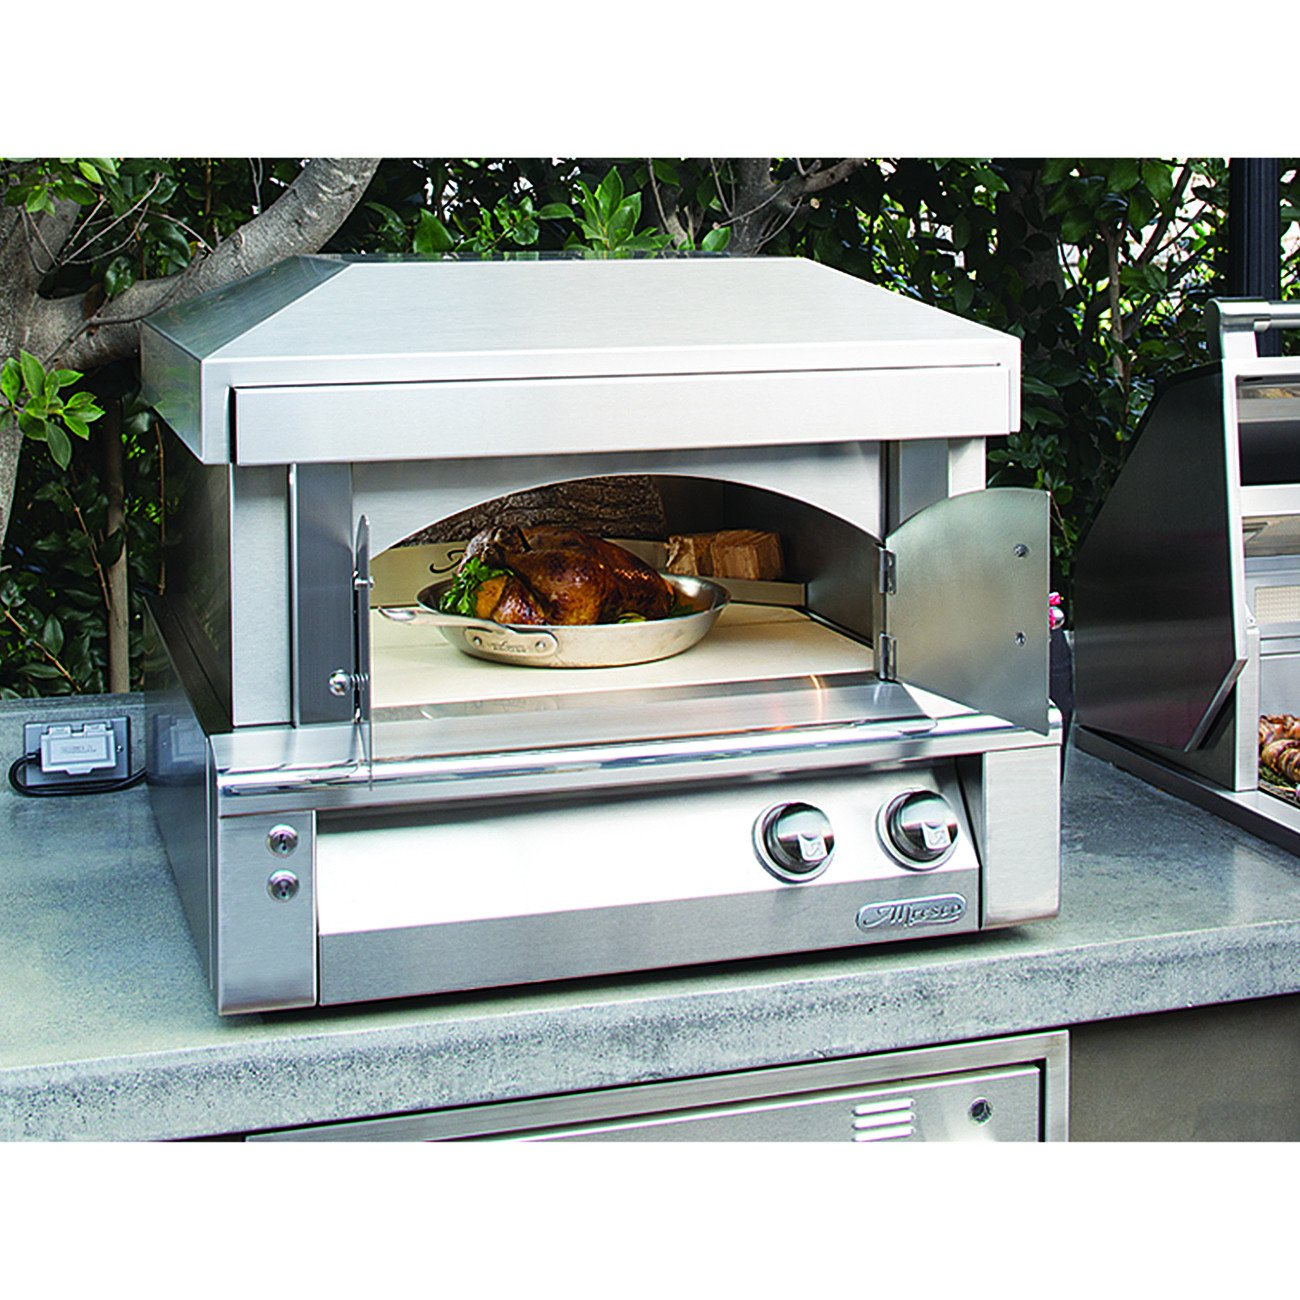 "Alfresco 30"" Pizza Oven for Countertop Mounting, Liquid Propane"